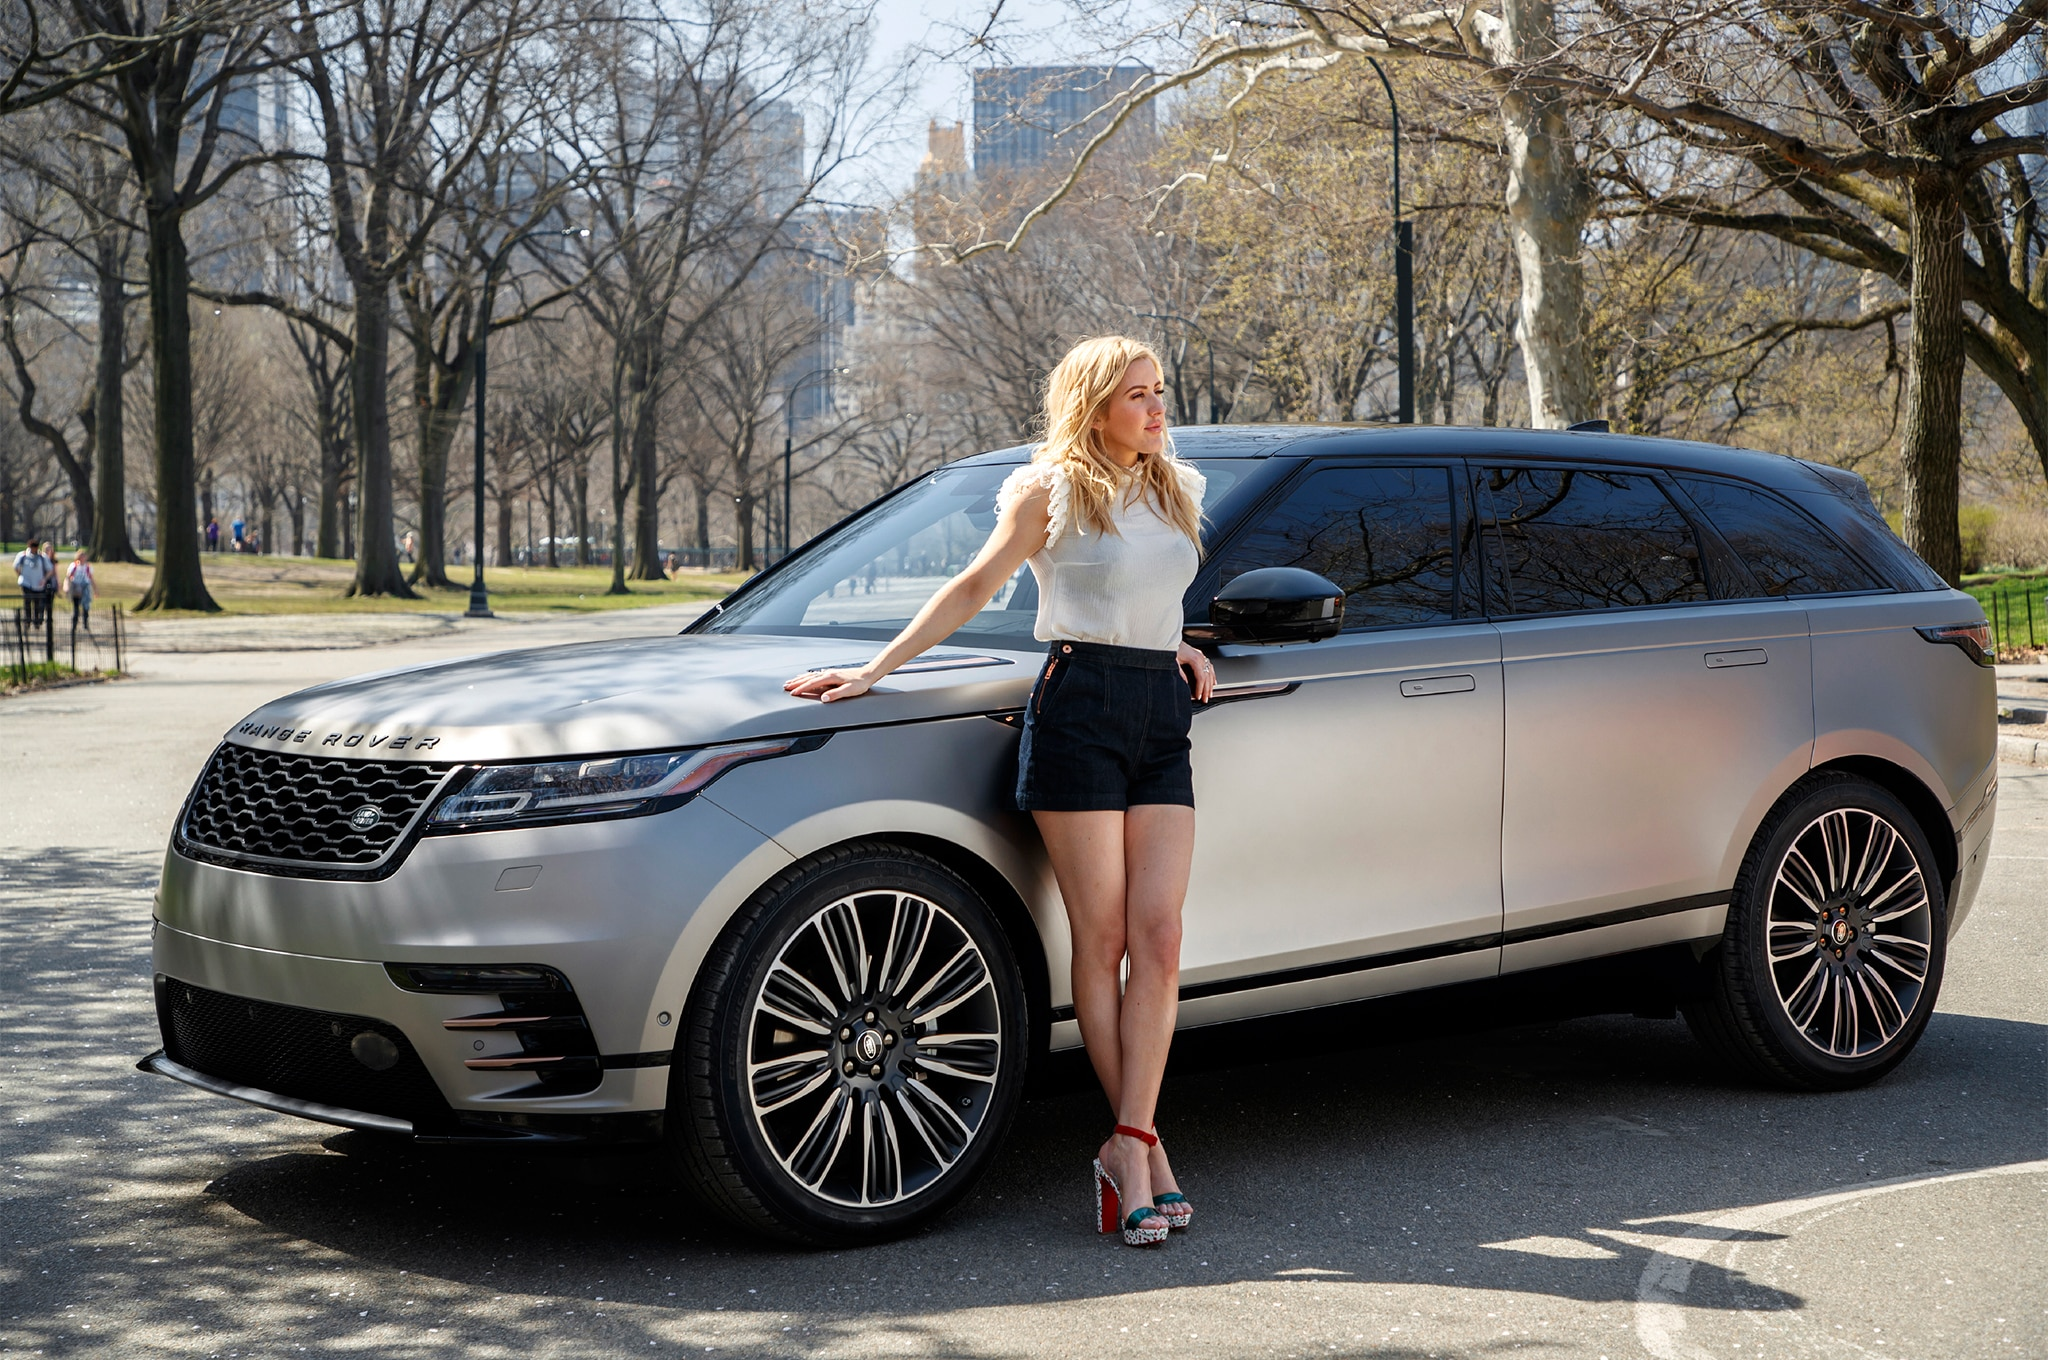 2018 Range Rover Velar Takes Manhattan with Pop Star Ellie